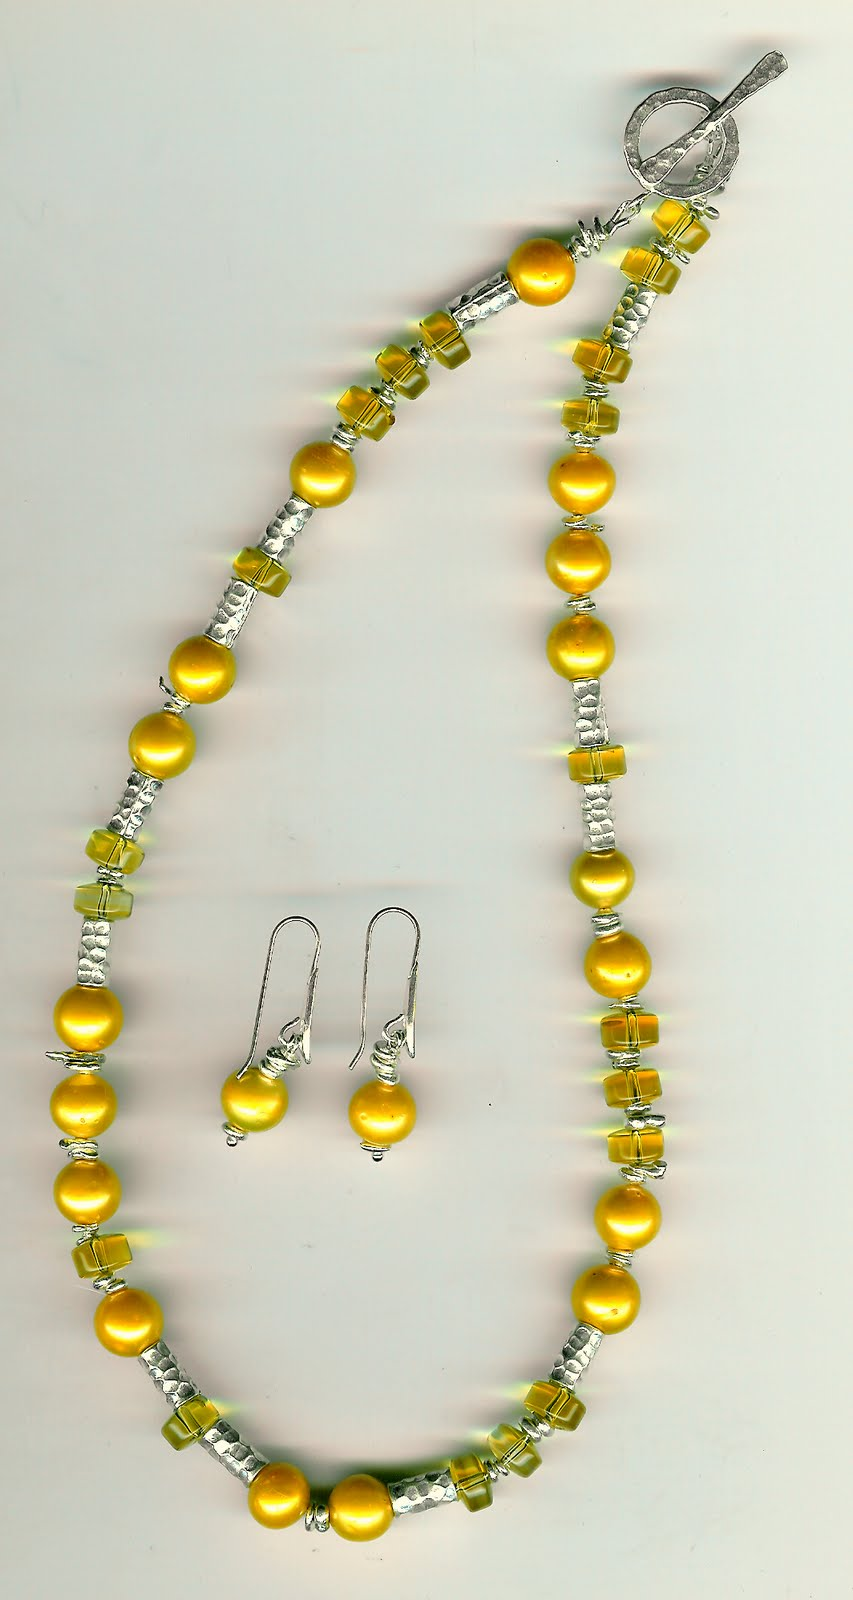 200. Yellow Akoya Pearls, Citrine and Karen Hill Thai Sterling Silver + Earrings